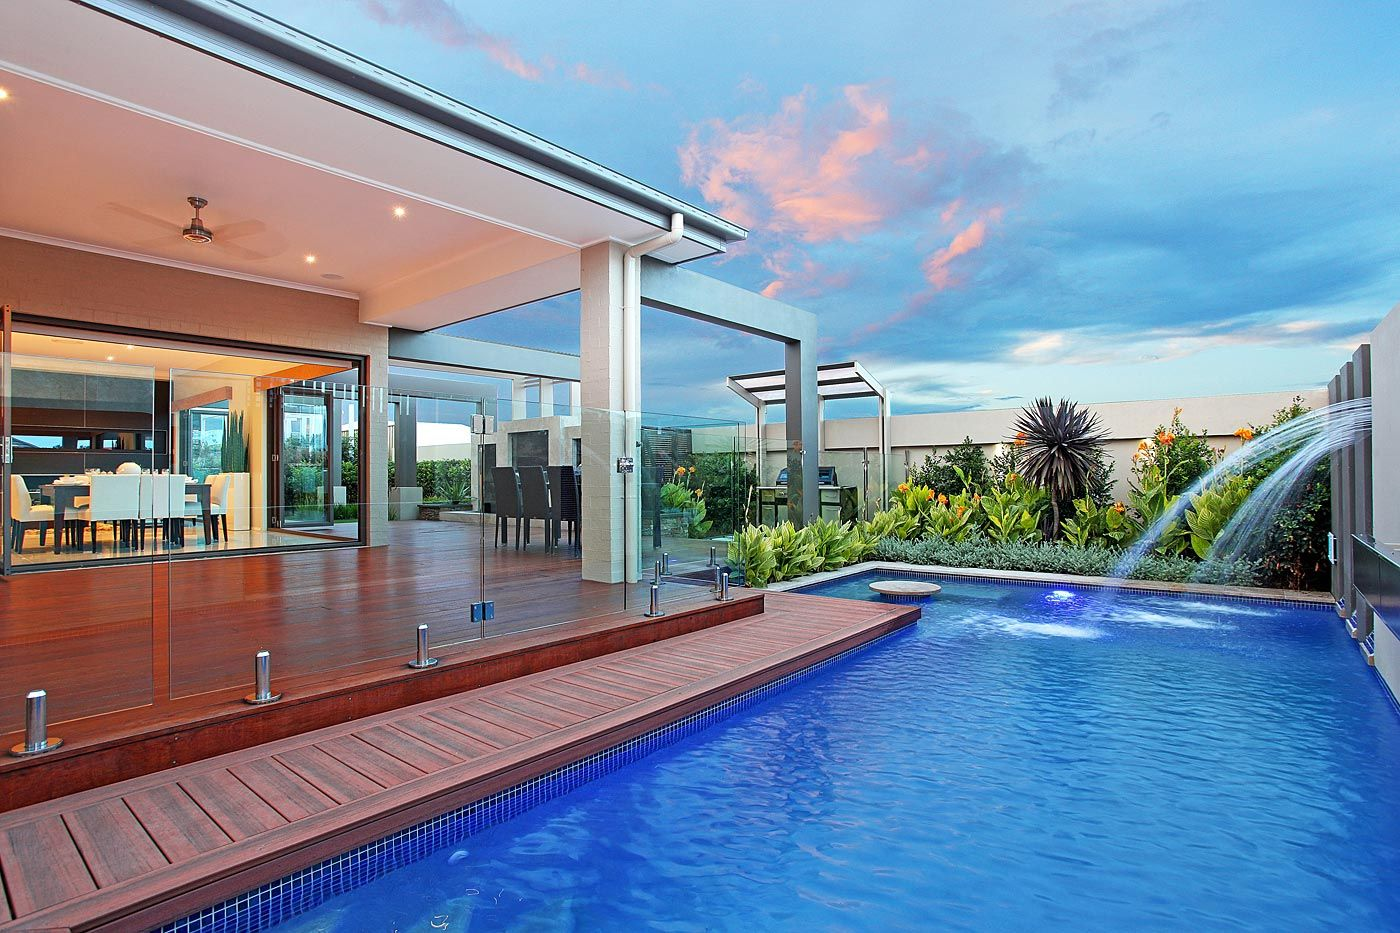 Monaco - Images | McDonald Jones Homes | Outdoor Room | Pinterest ...